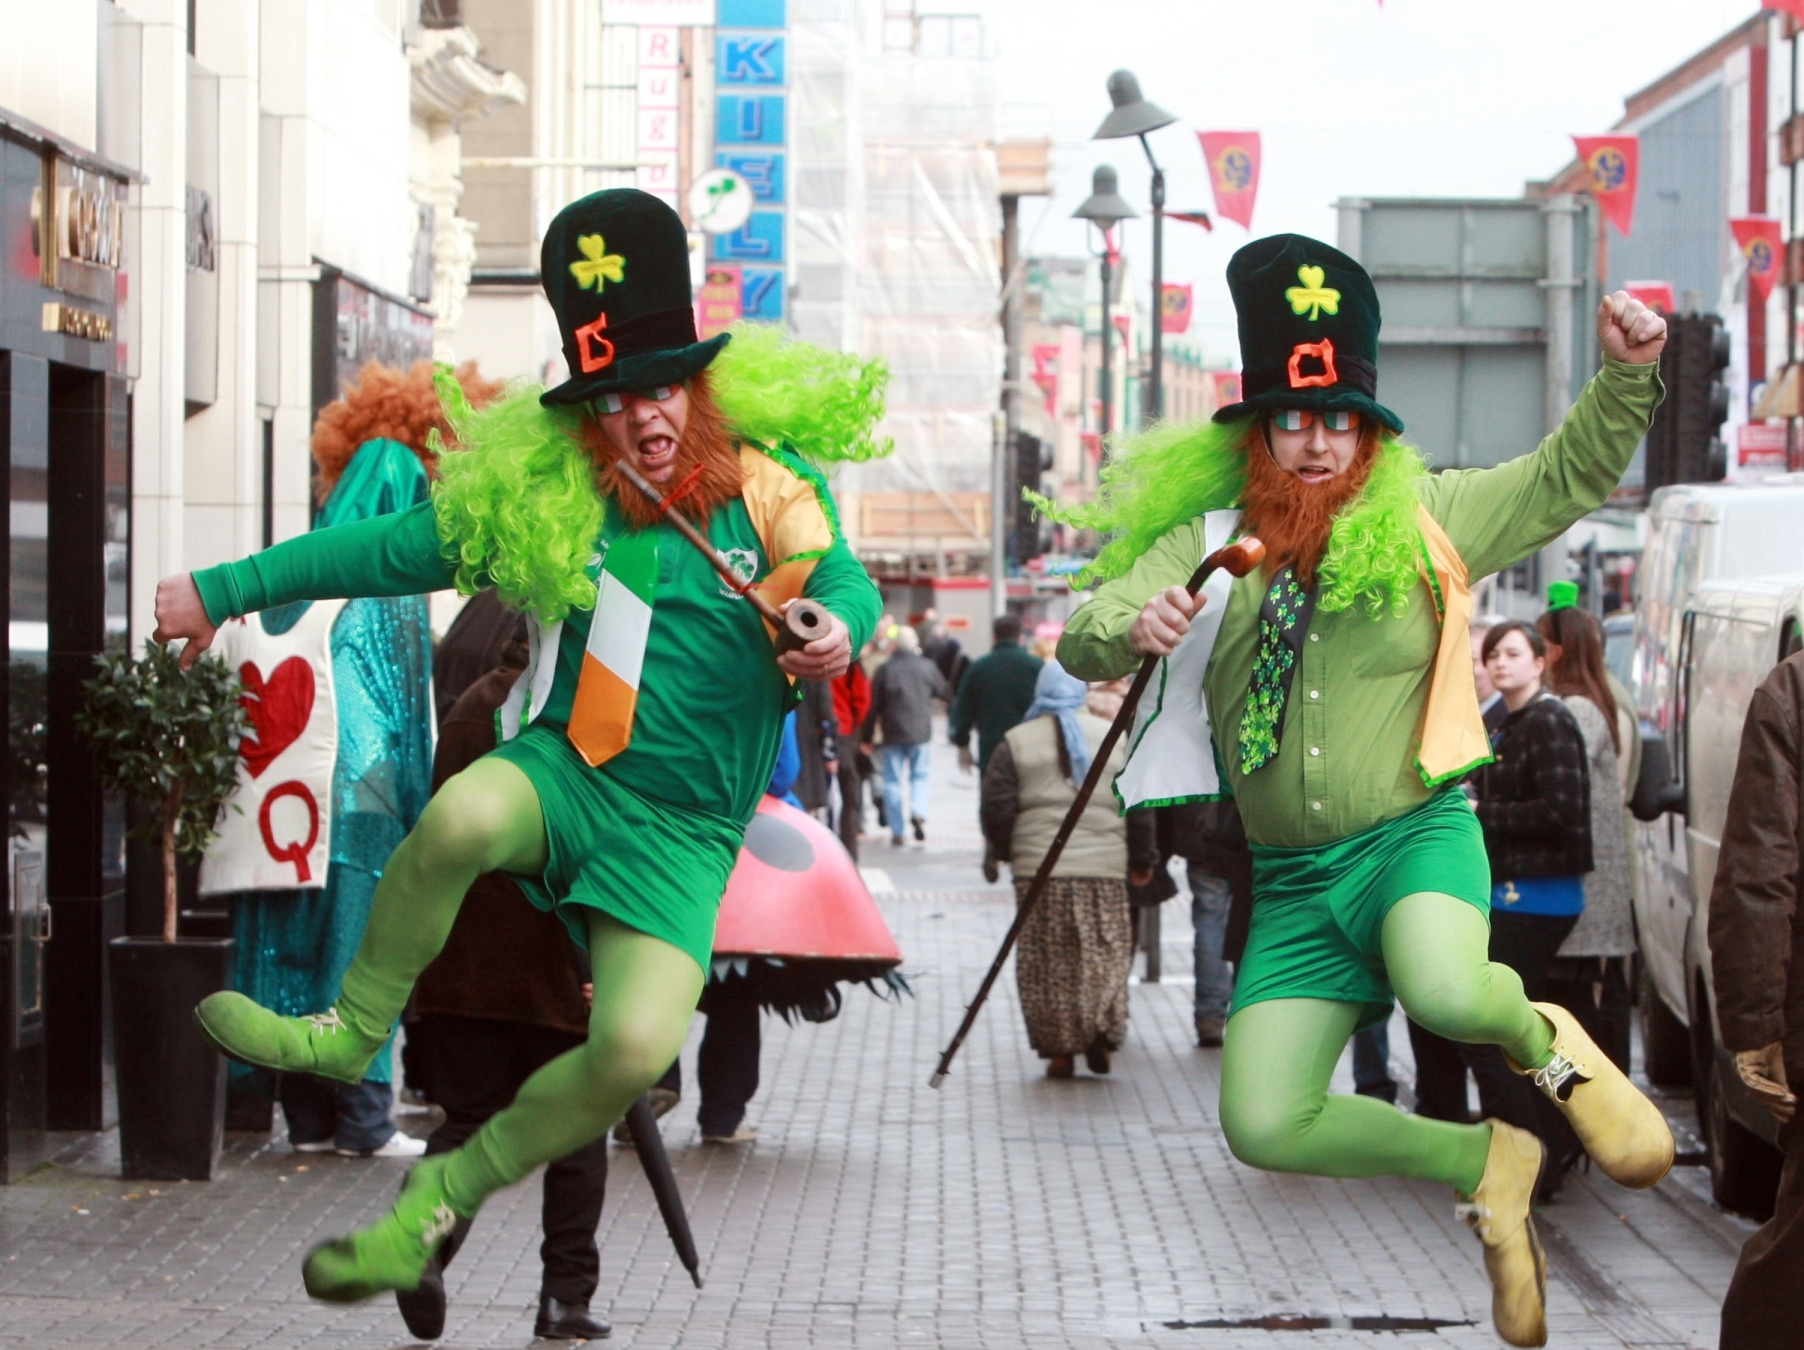 st.-patrick-day-in-ireland.jpg